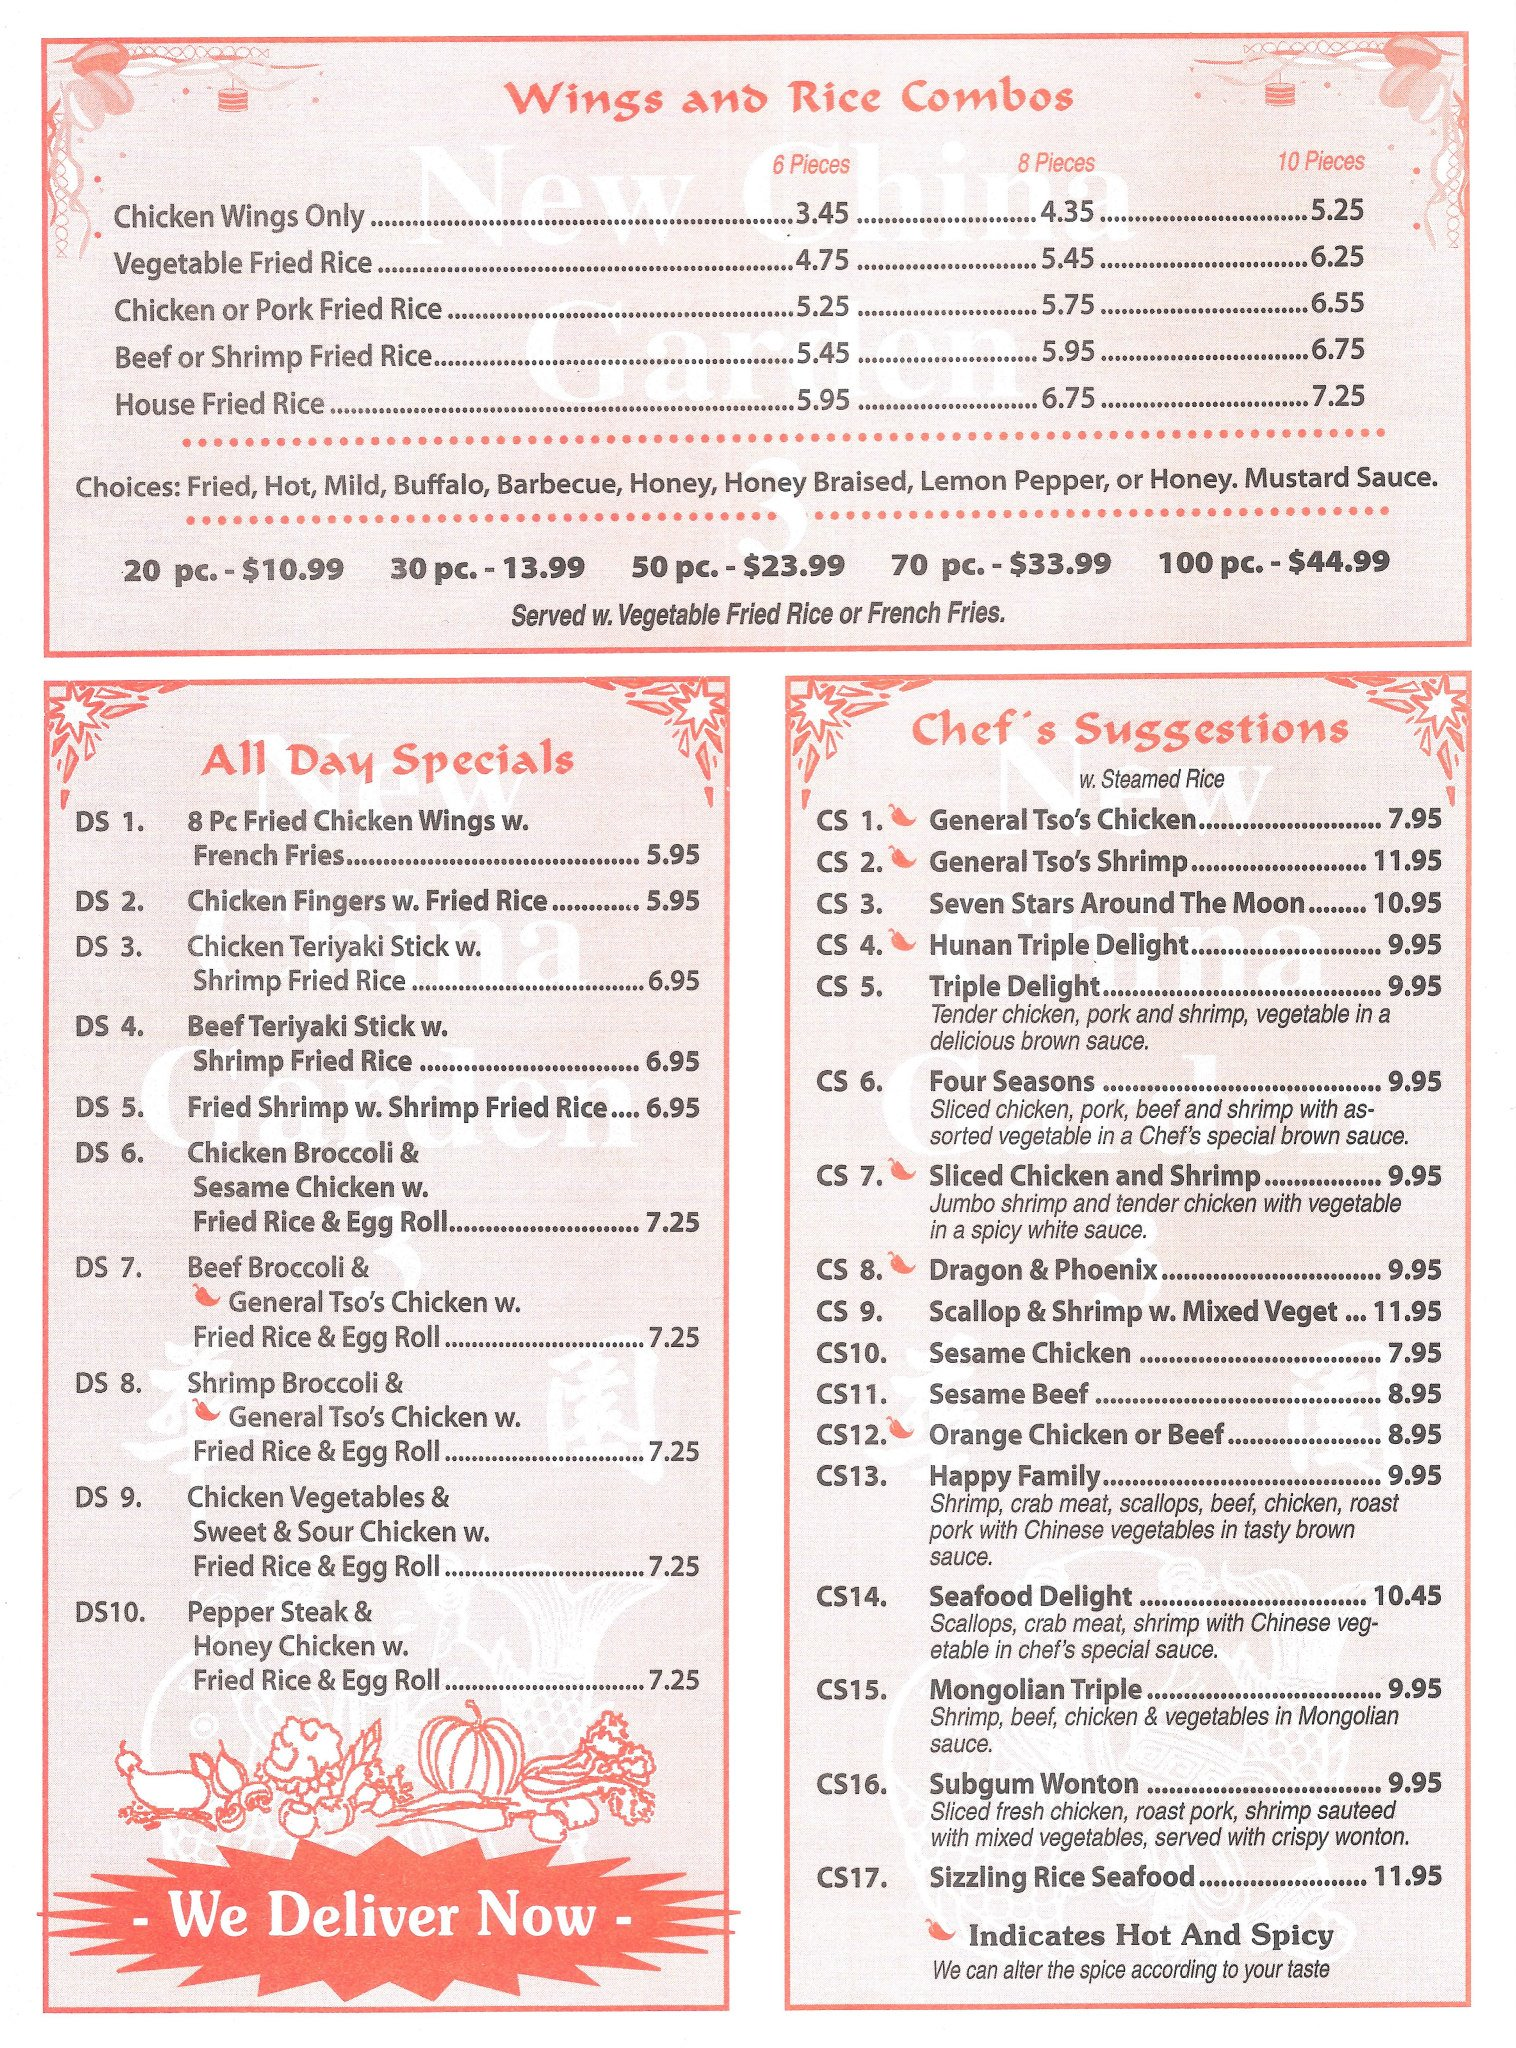 China Garden Menu Menu For China Garden Milledgeville Milledgeville